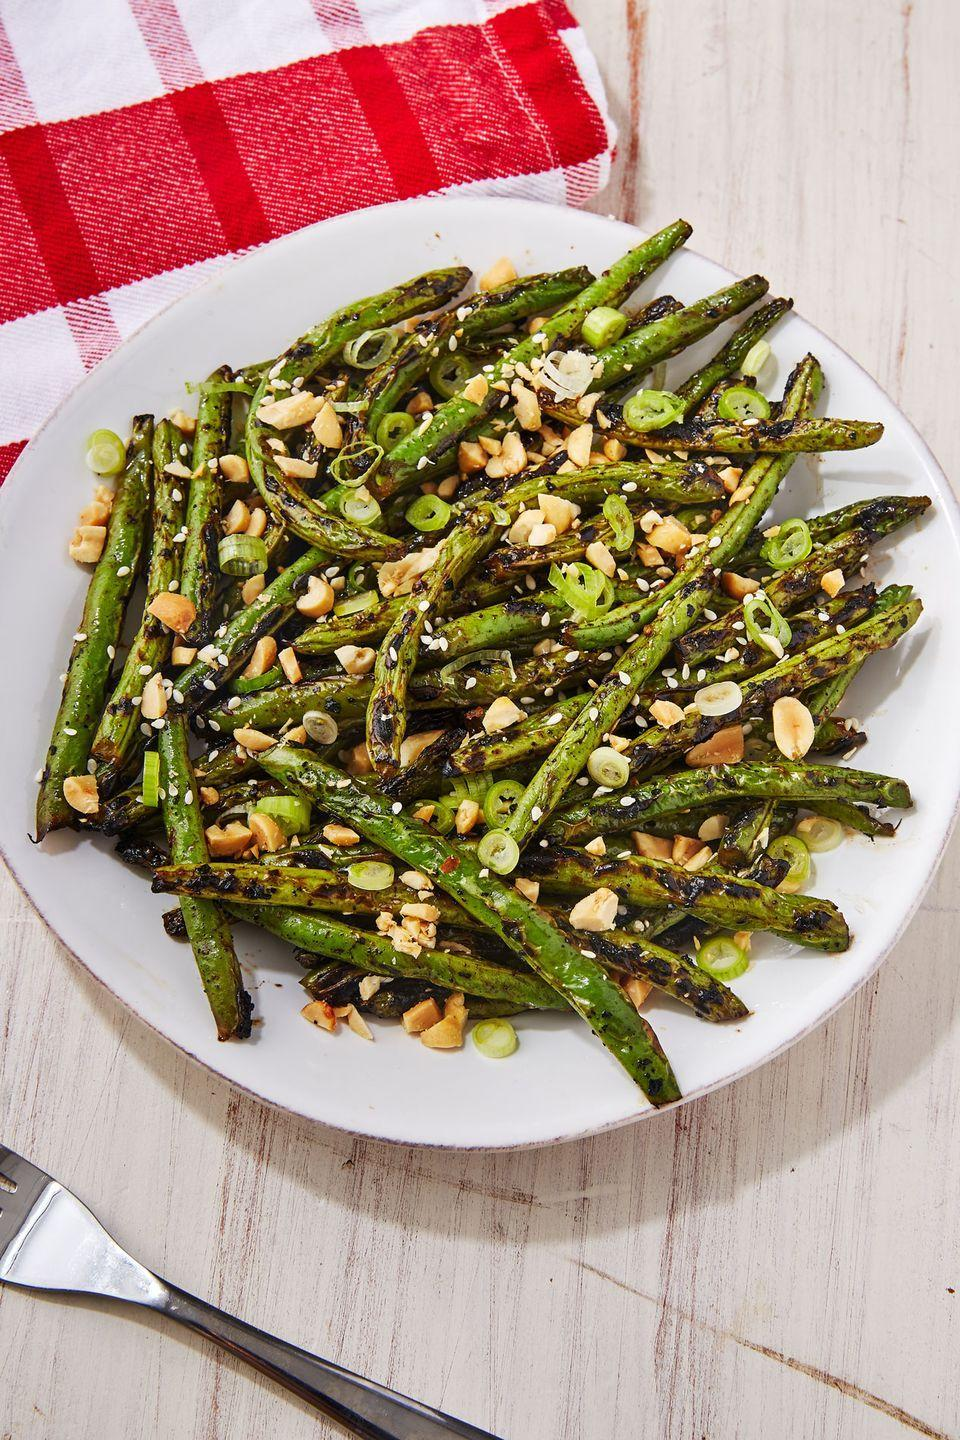 """<p>Very underrated. </p><p>Get the recipe from <a href=""""https://www.delish.com/cooking/recipe-ideas/a22243865/grilled-green-beans-recipe/"""" rel=""""nofollow noopener"""" target=""""_blank"""" data-ylk=""""slk:Delish"""" class=""""link rapid-noclick-resp"""">Delish</a>. </p>"""